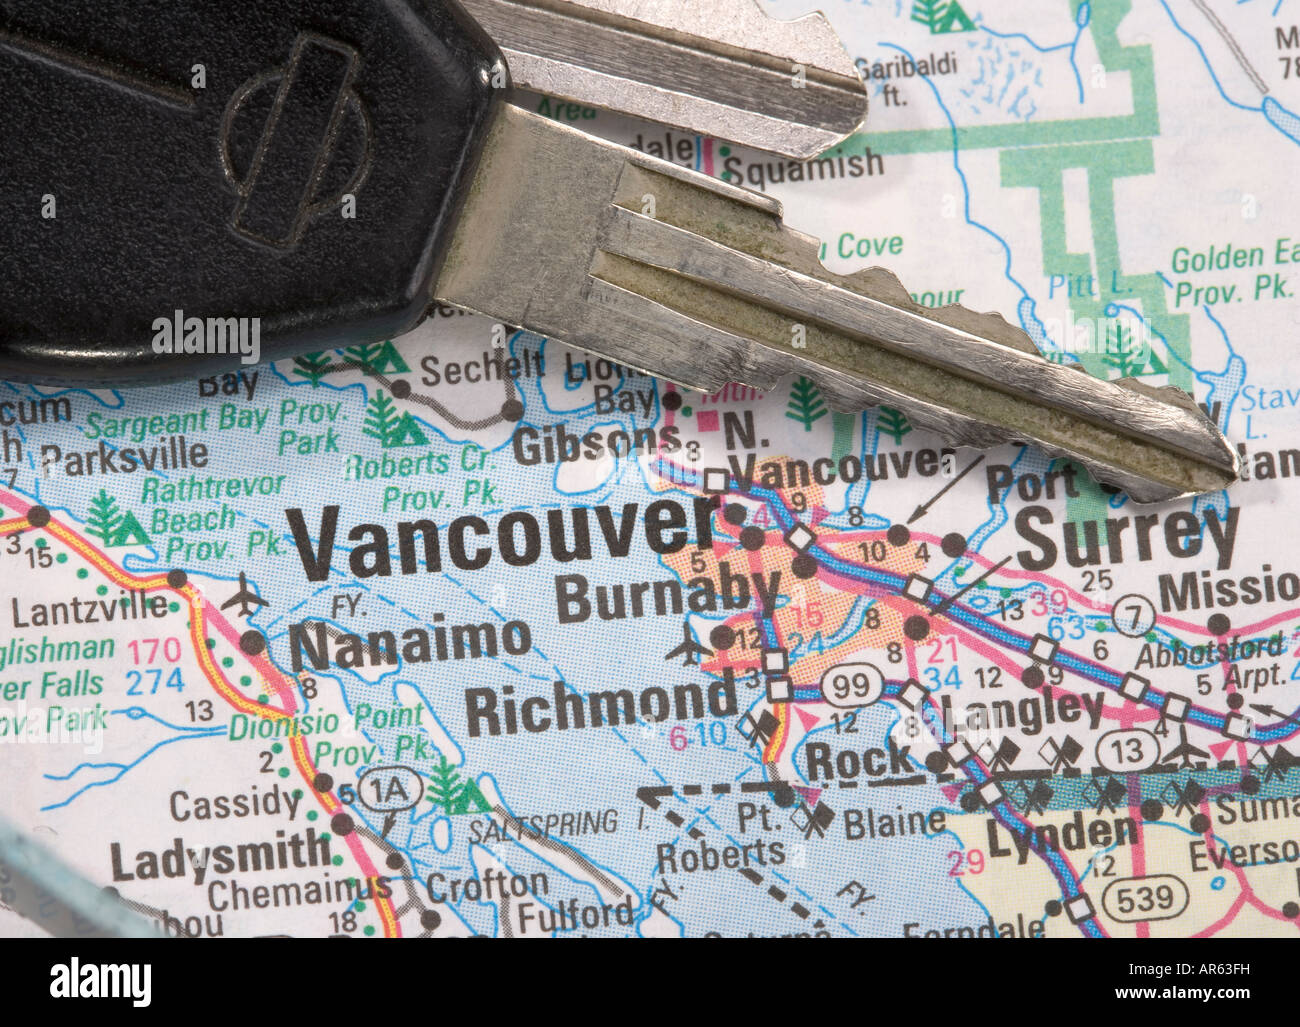 Vancouver Bc Canada Map.A Close Up Of A Map Of Vancouver B C Canada With Car Keys Stock